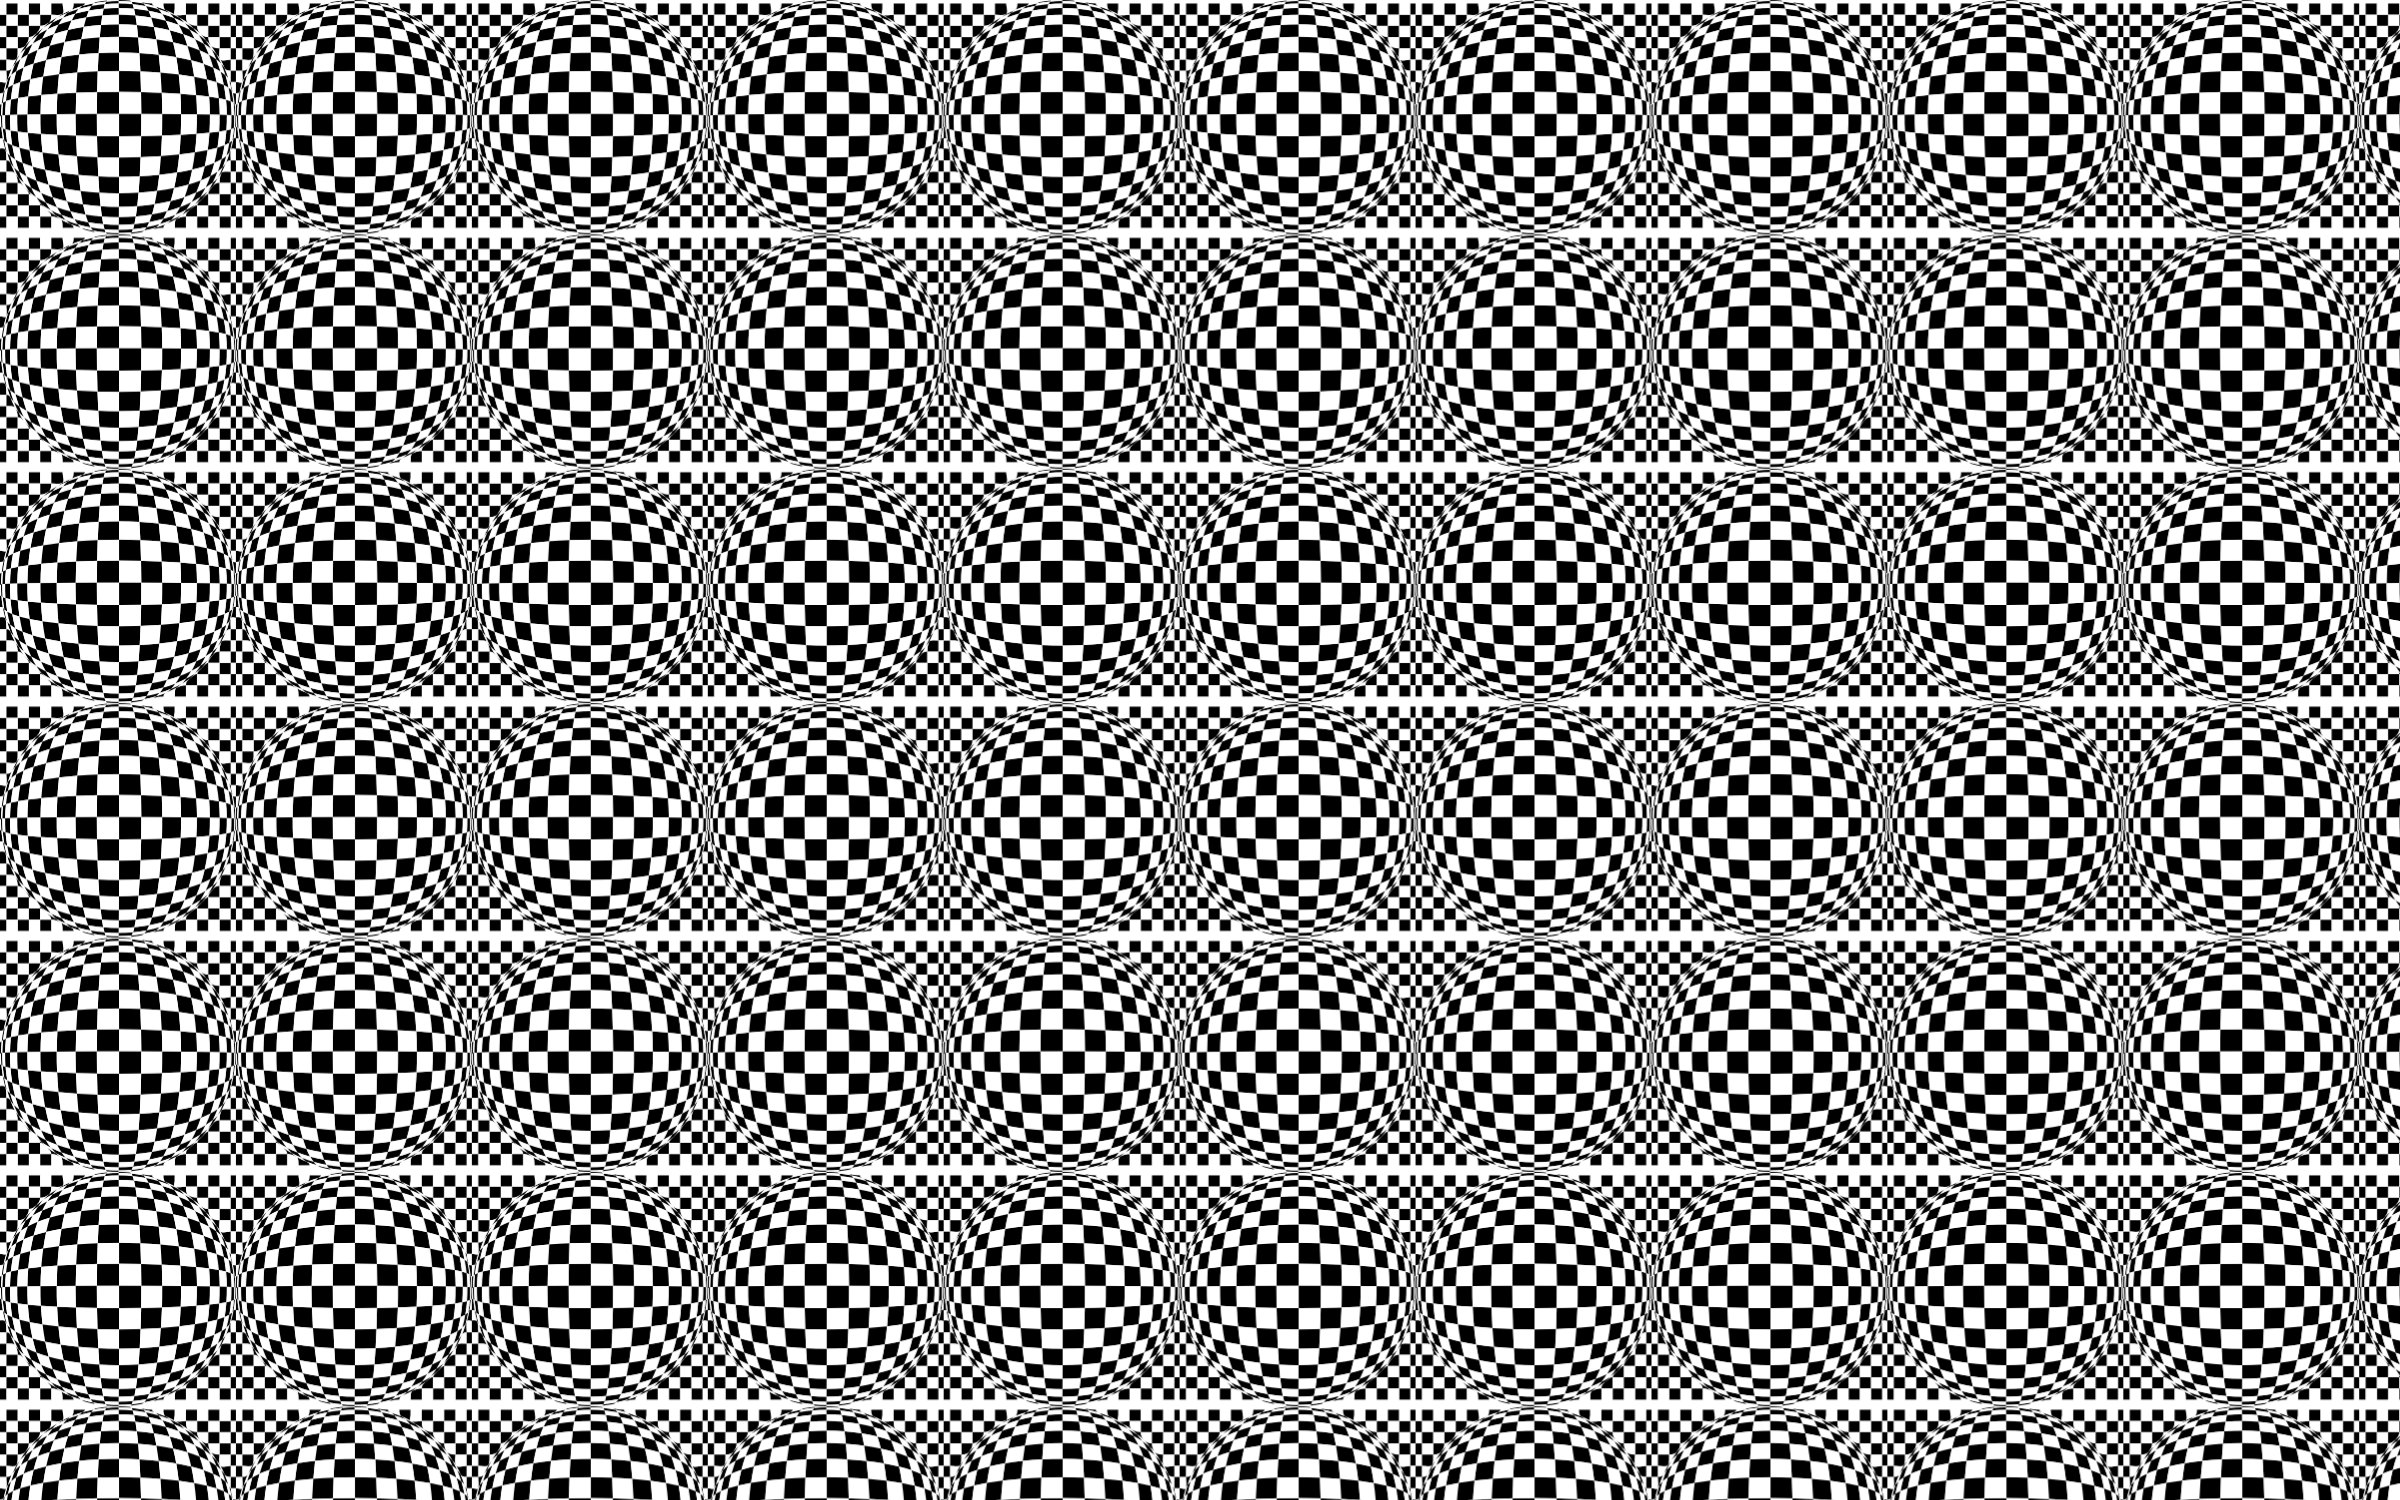 Seamless Distorted Checkerboard Pattern by GDJ